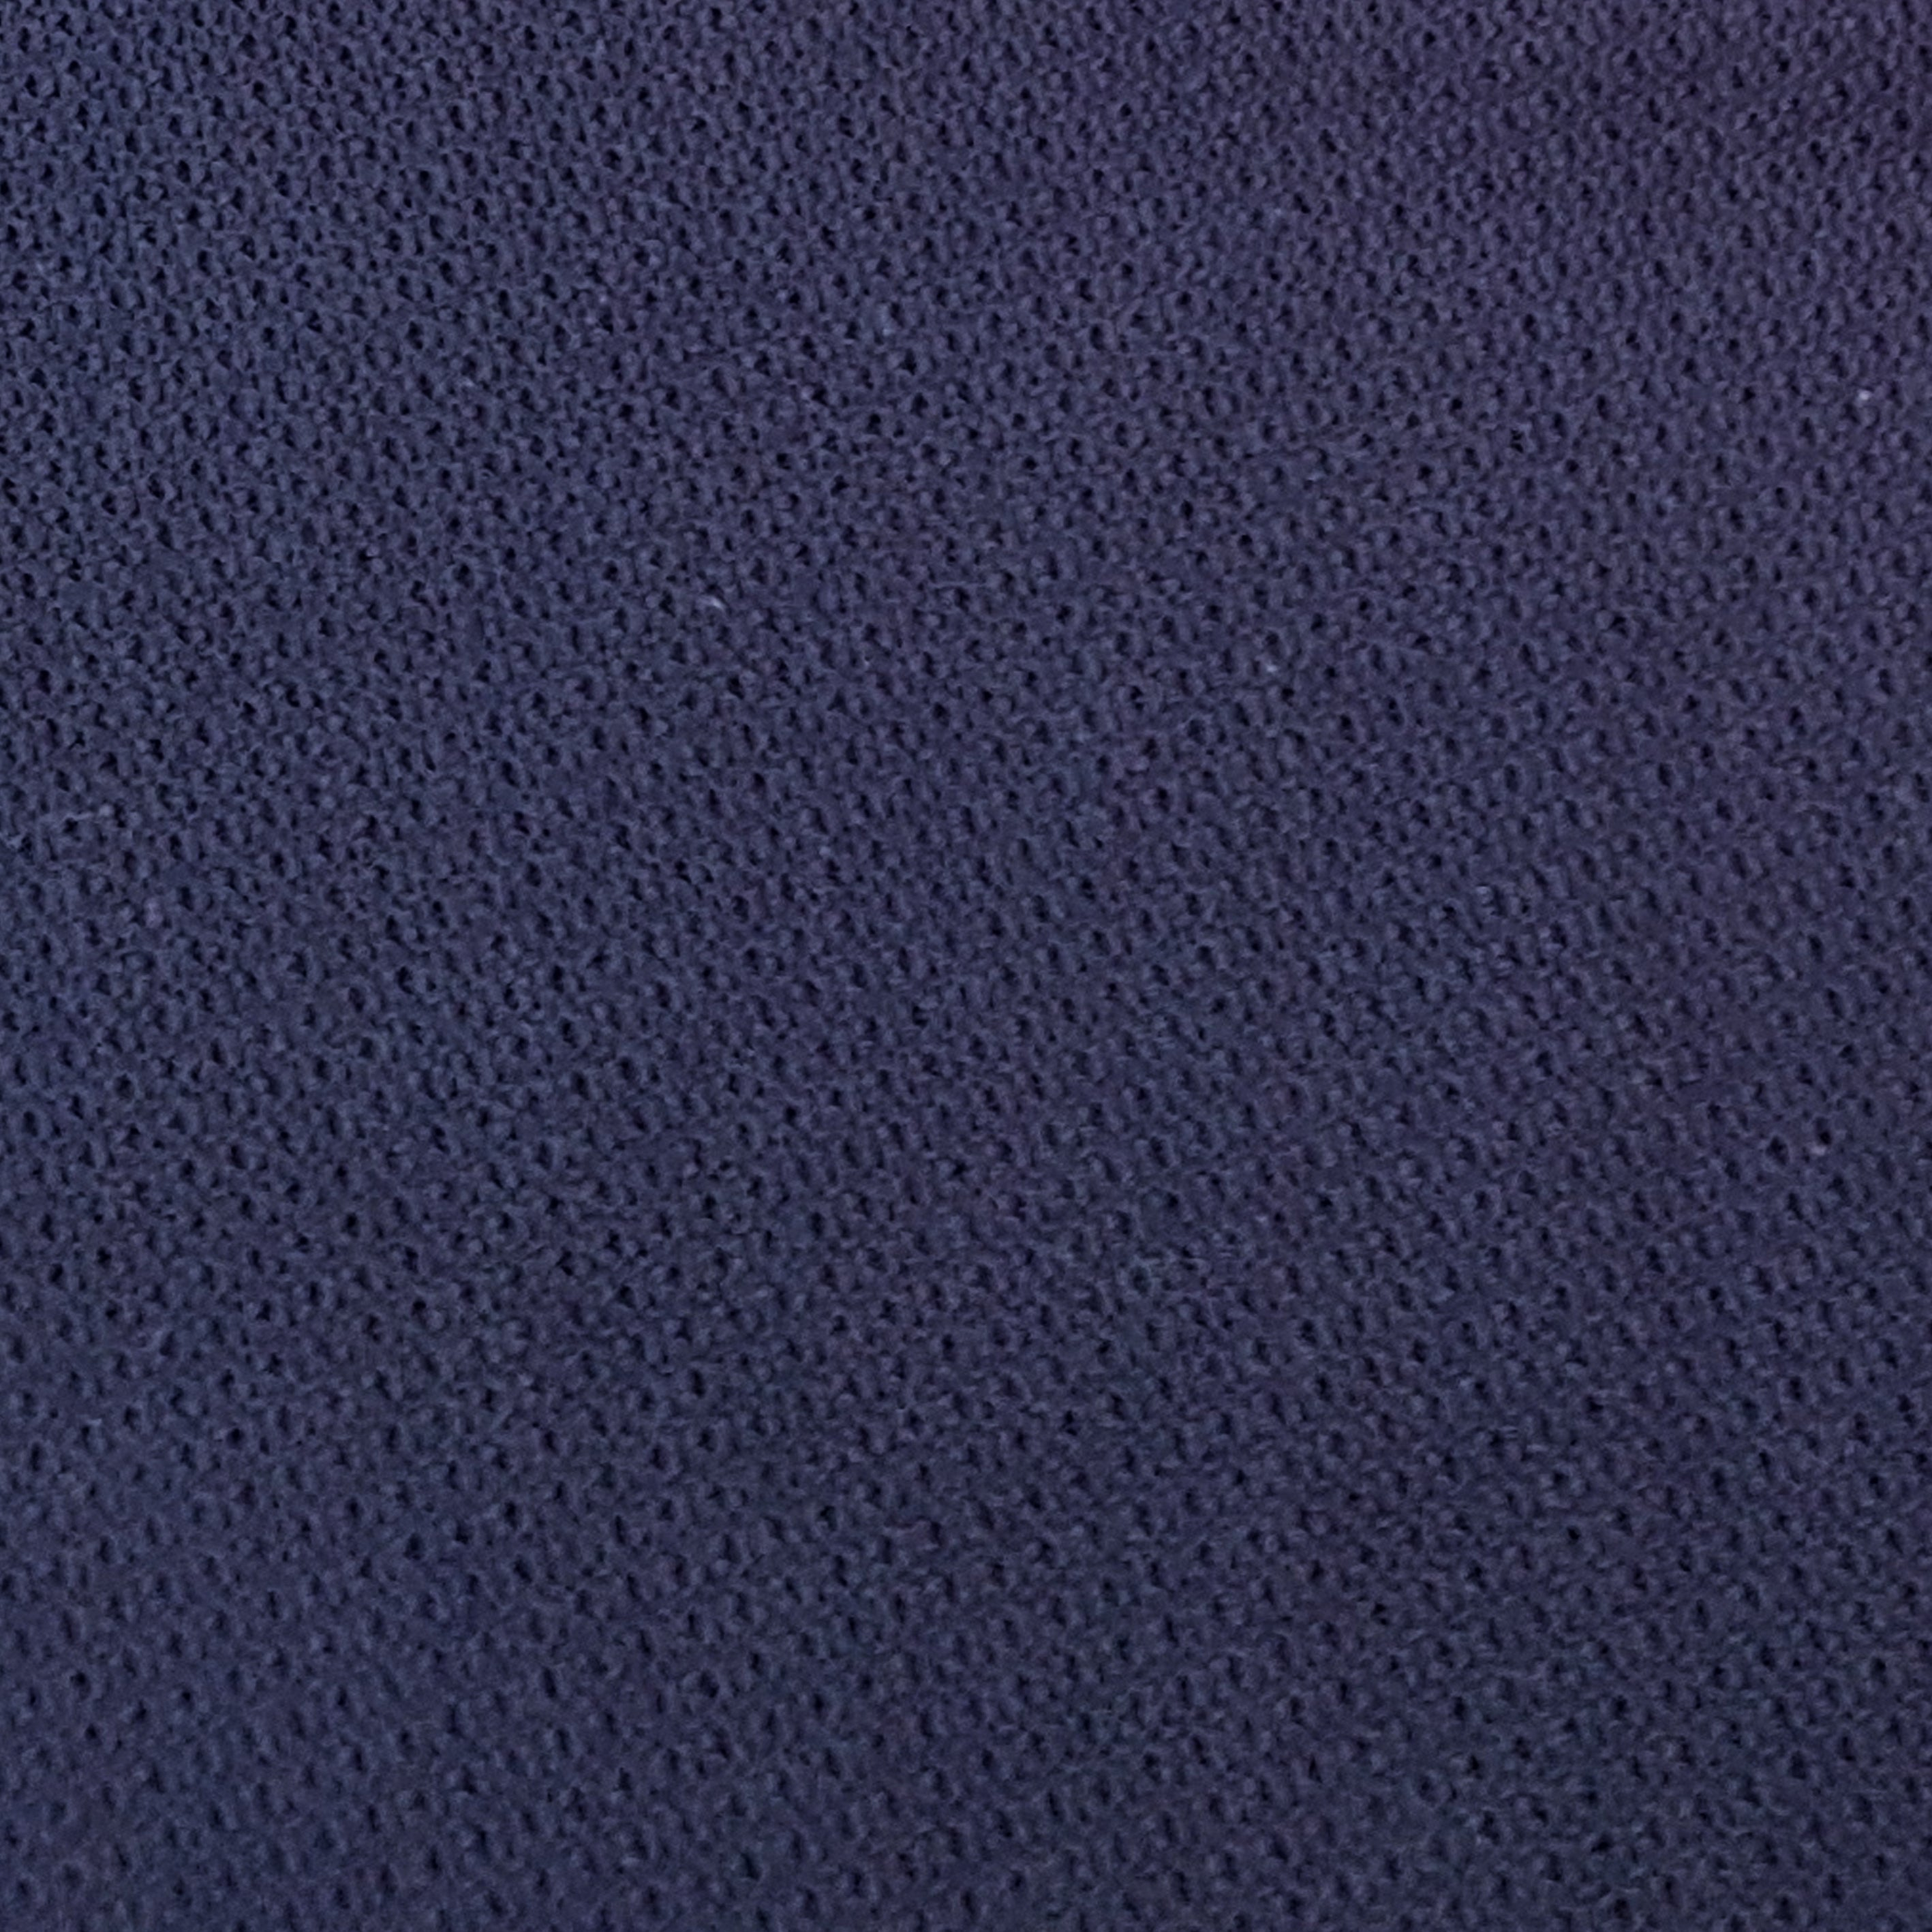 Cellular Cotton Navy Polo - SJC